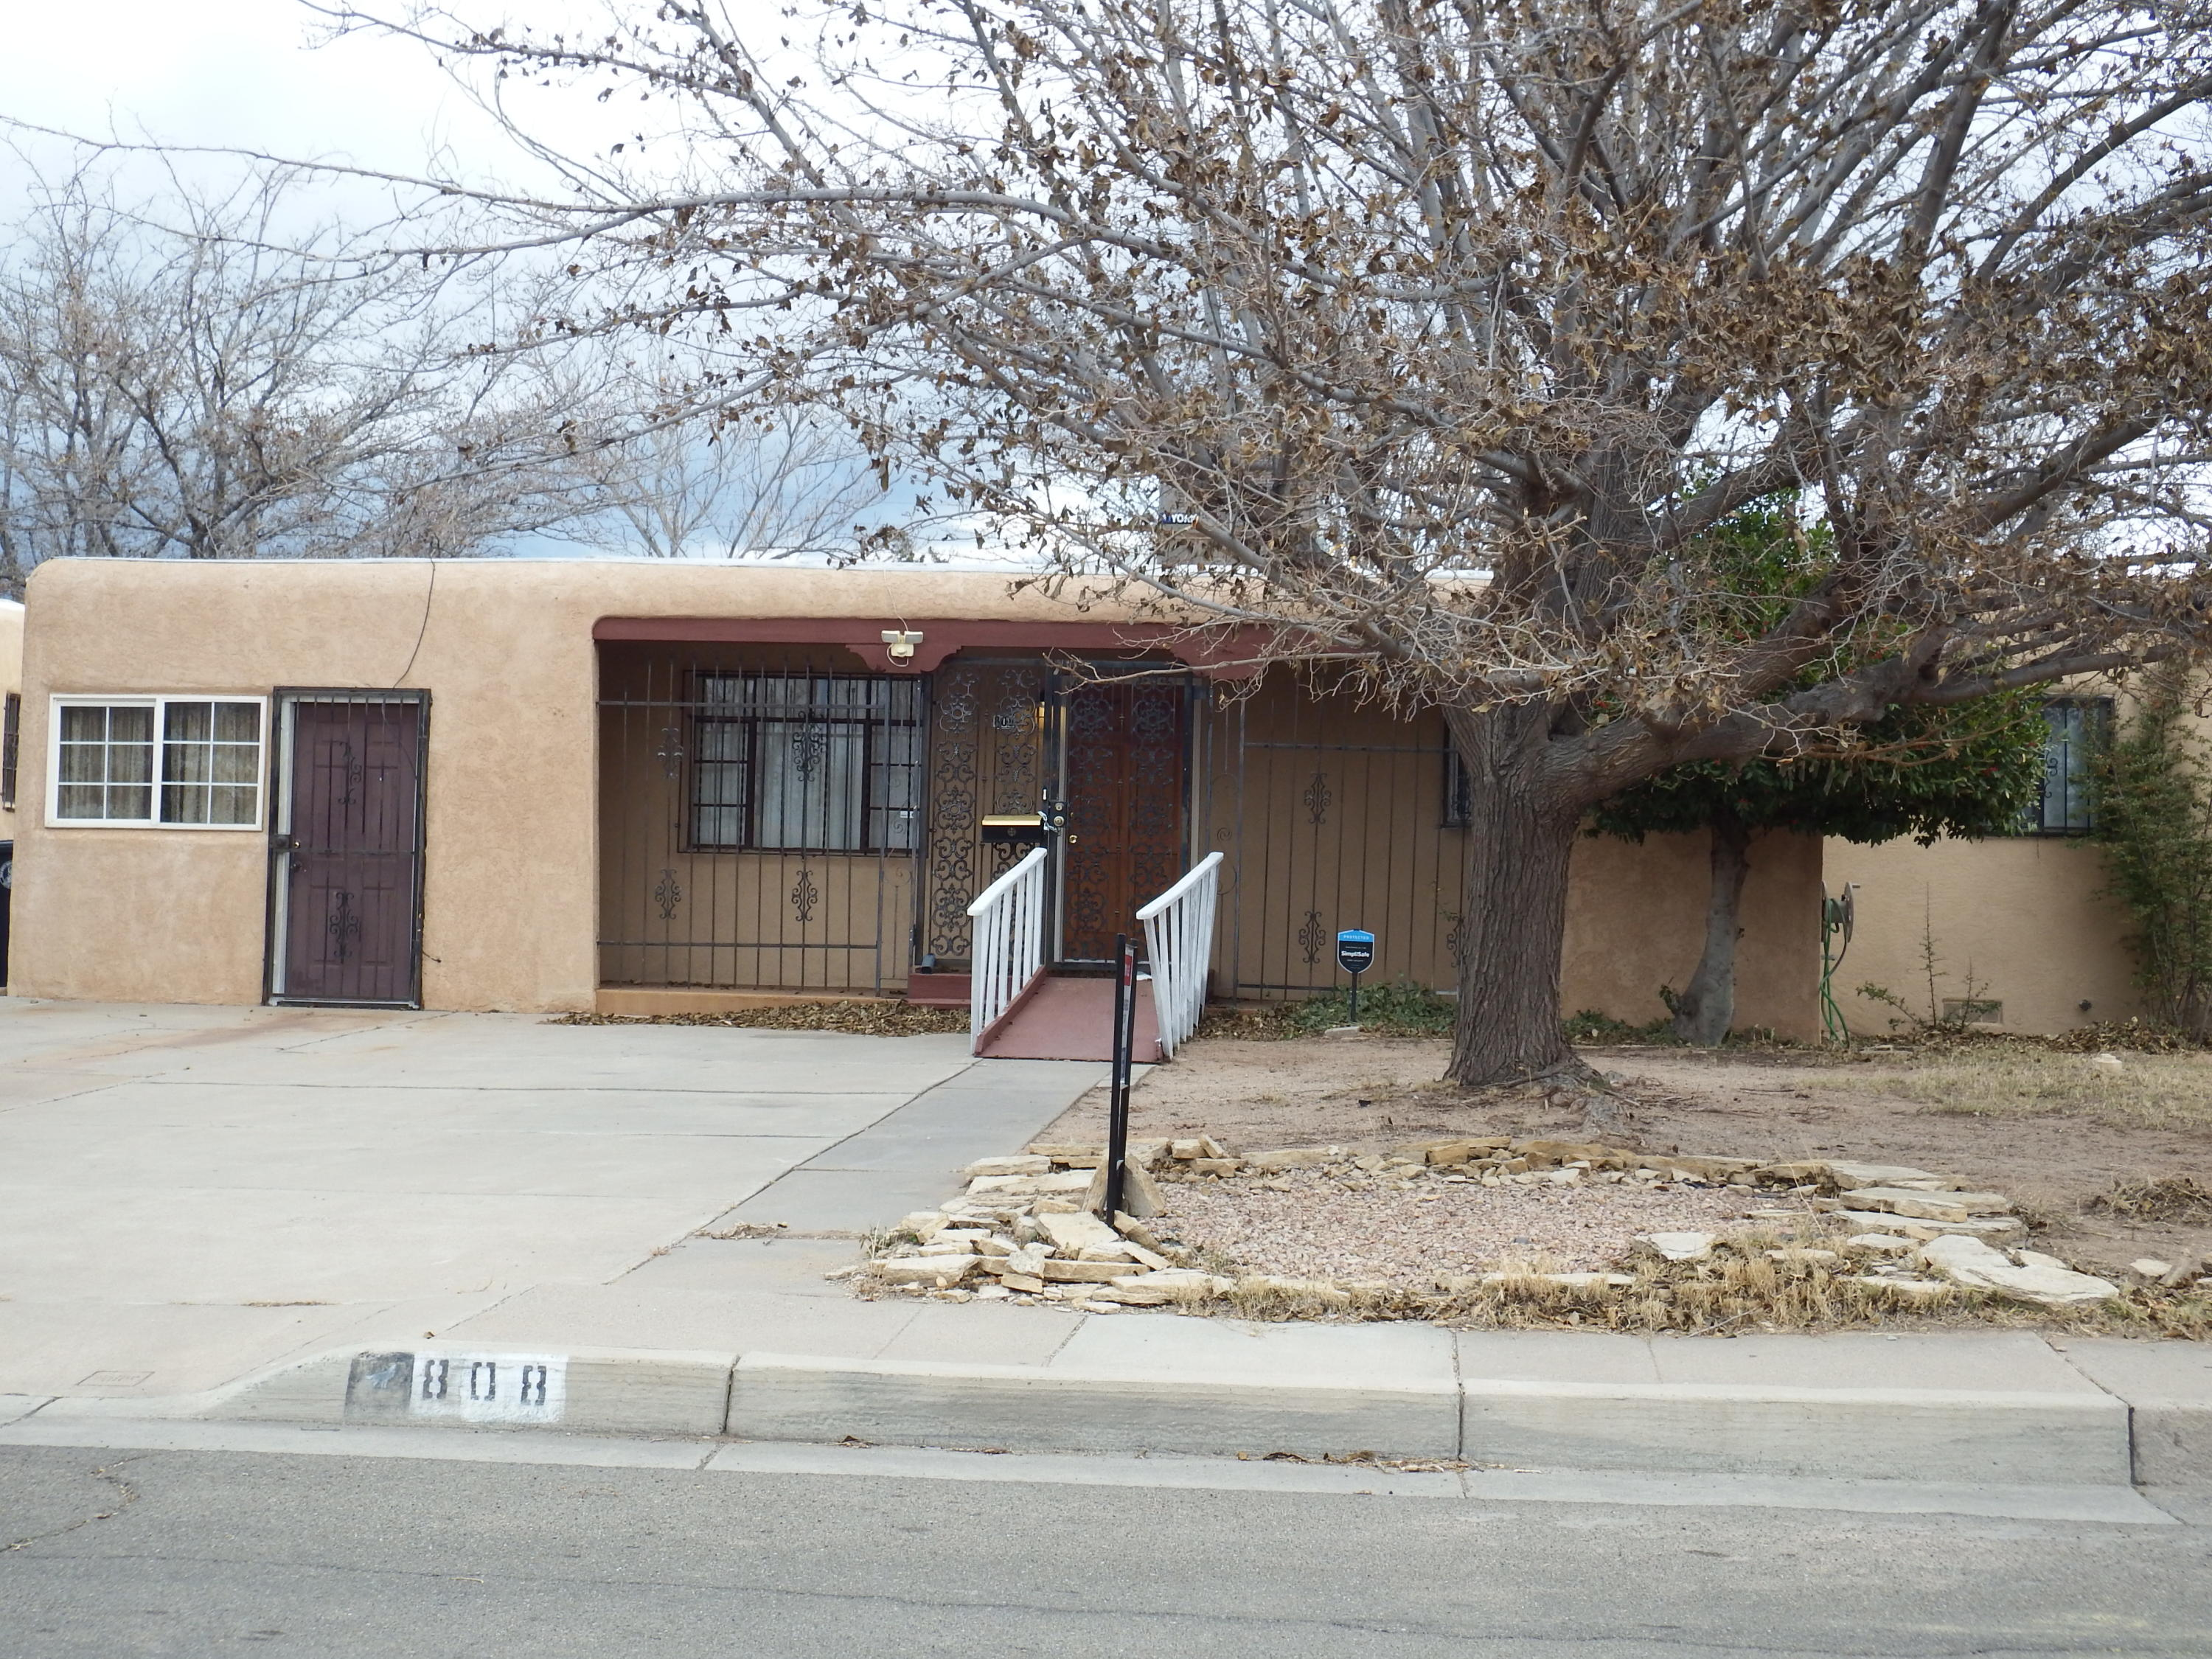 One of a kind,, ready for a disabled Buyer,  3 bedrooms or 4, ADA  compliant shower with its own family room or bedroom., exterior access available, Large gathering room with firepalce,also  a  could be separtate office with own access,  or bedroom with outside accesibility.  Many  possibilites with double attached car garage, access to an alley, completey fenced and security bars attached. Almost new Refrigerated air conditioner unit, newer plumbing from the street to the property,